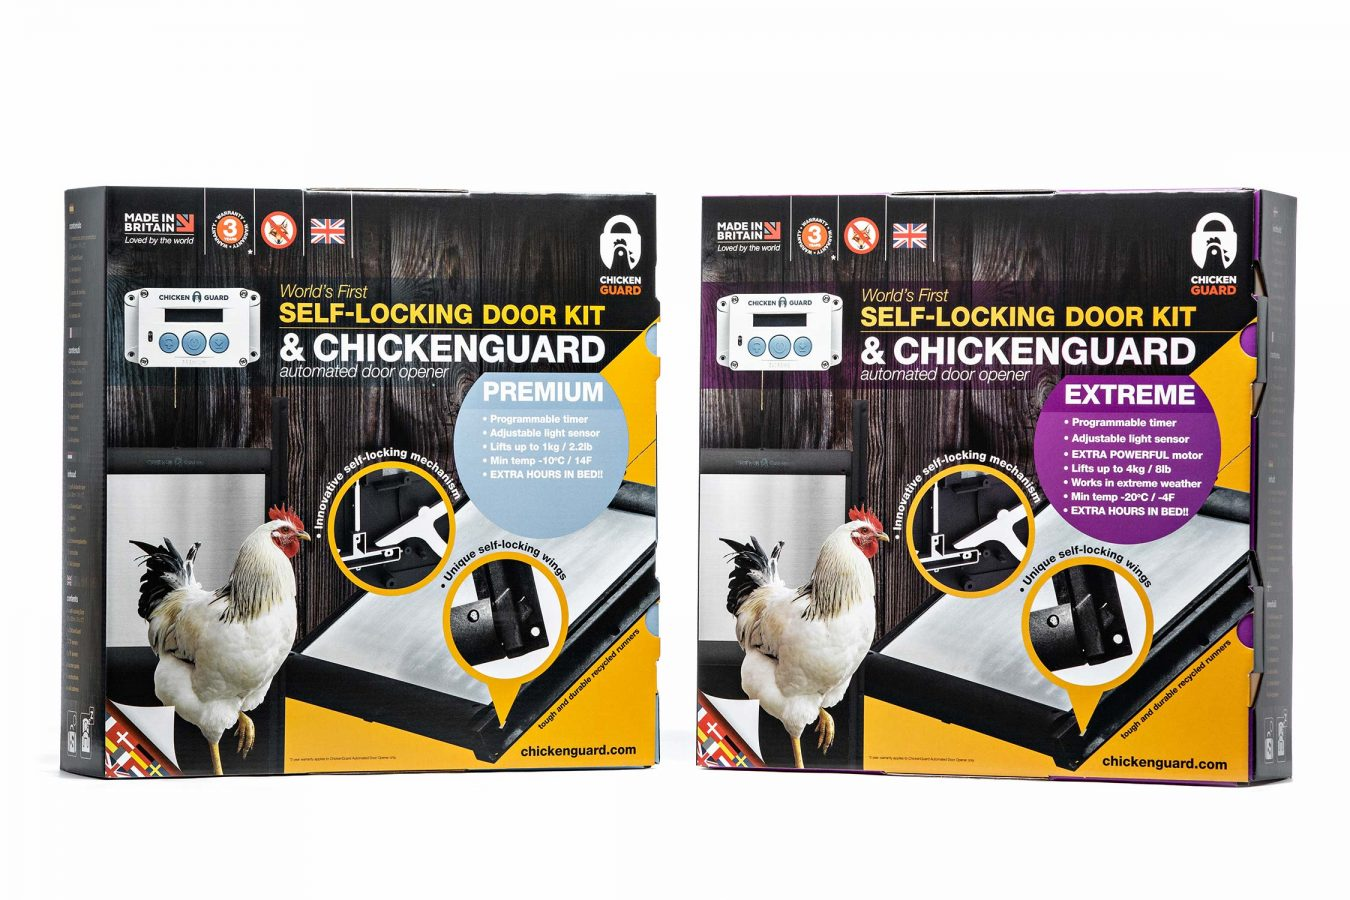 chicken-guard-packaging-product-photography